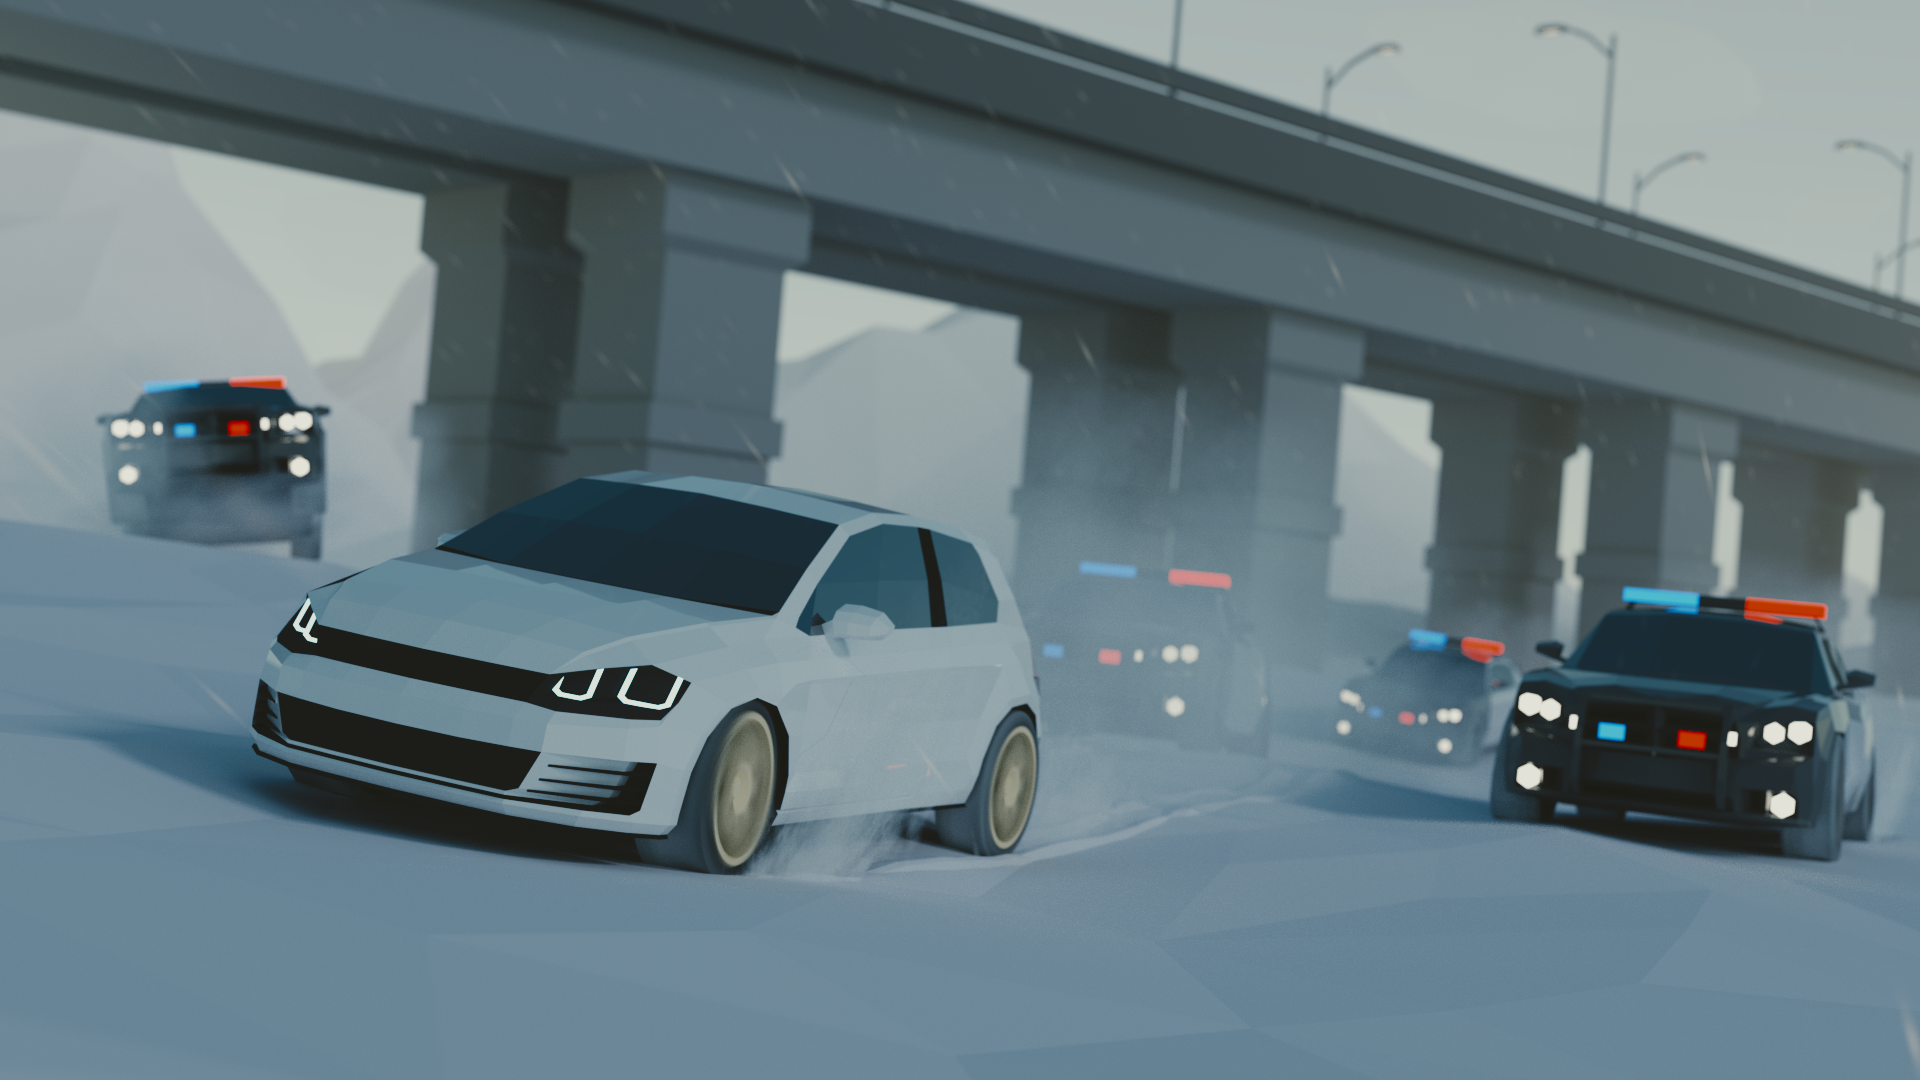 Freeway, Road, Automobile, Car, Coupe resized by Ze Robot